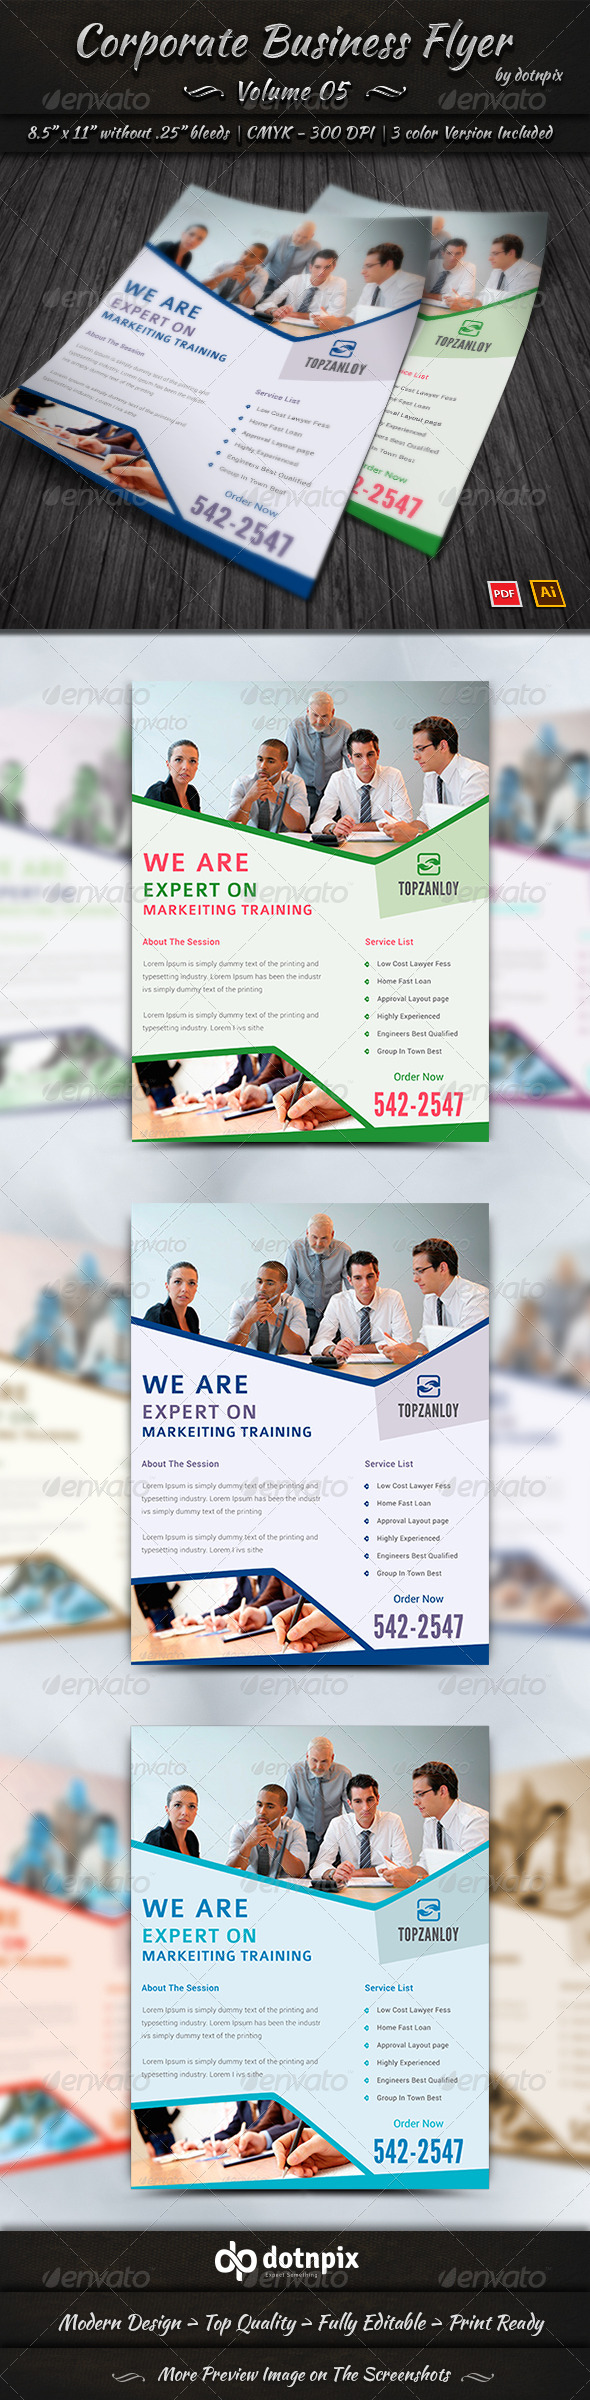 GraphicRiver Corporate Business Flyer Volume 5 7989614